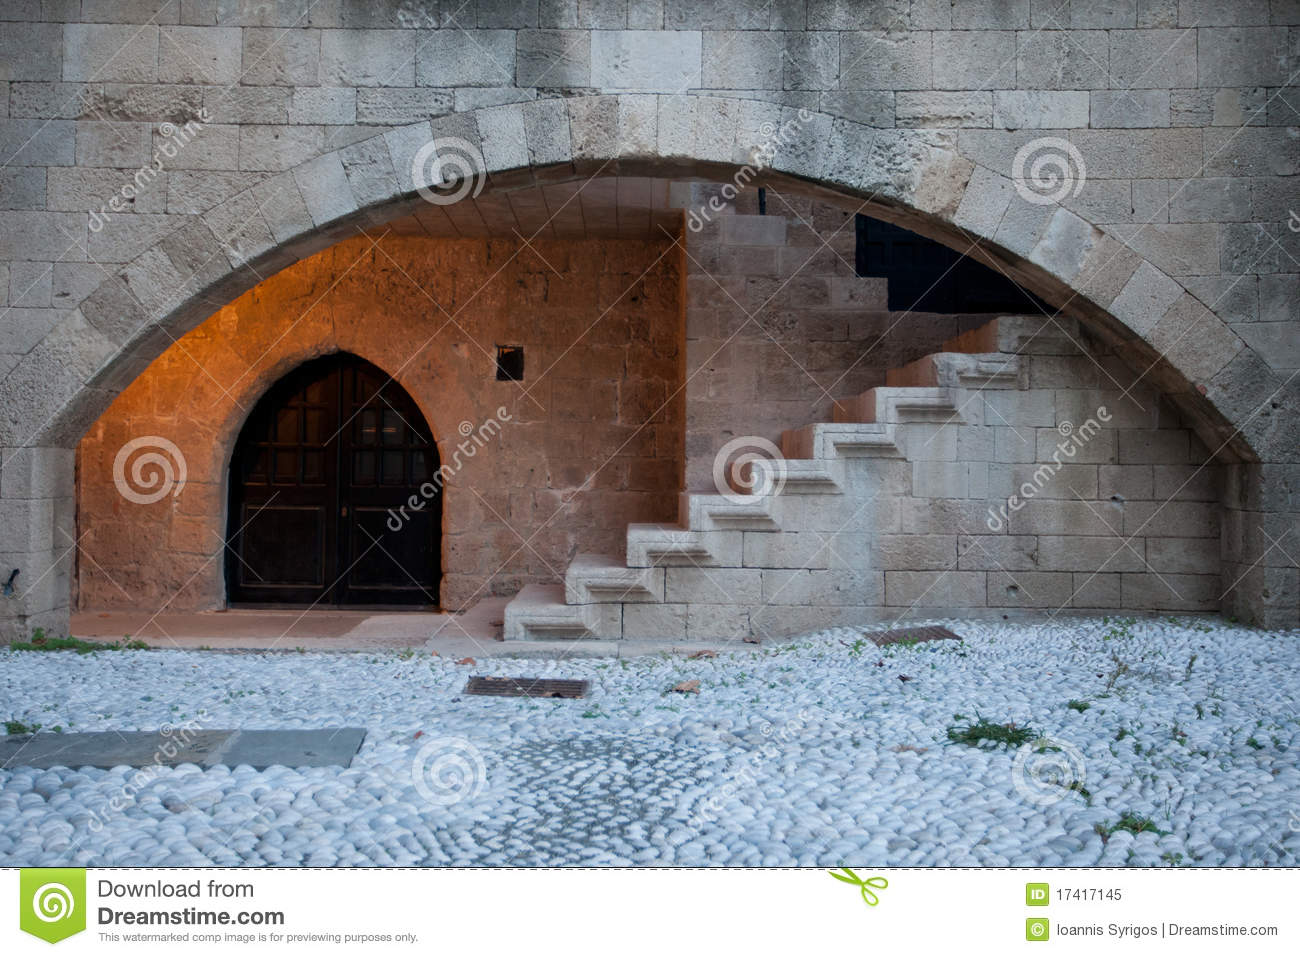 stone arch and stairs stock image image of brick medieval 17417145. Black Bedroom Furniture Sets. Home Design Ideas